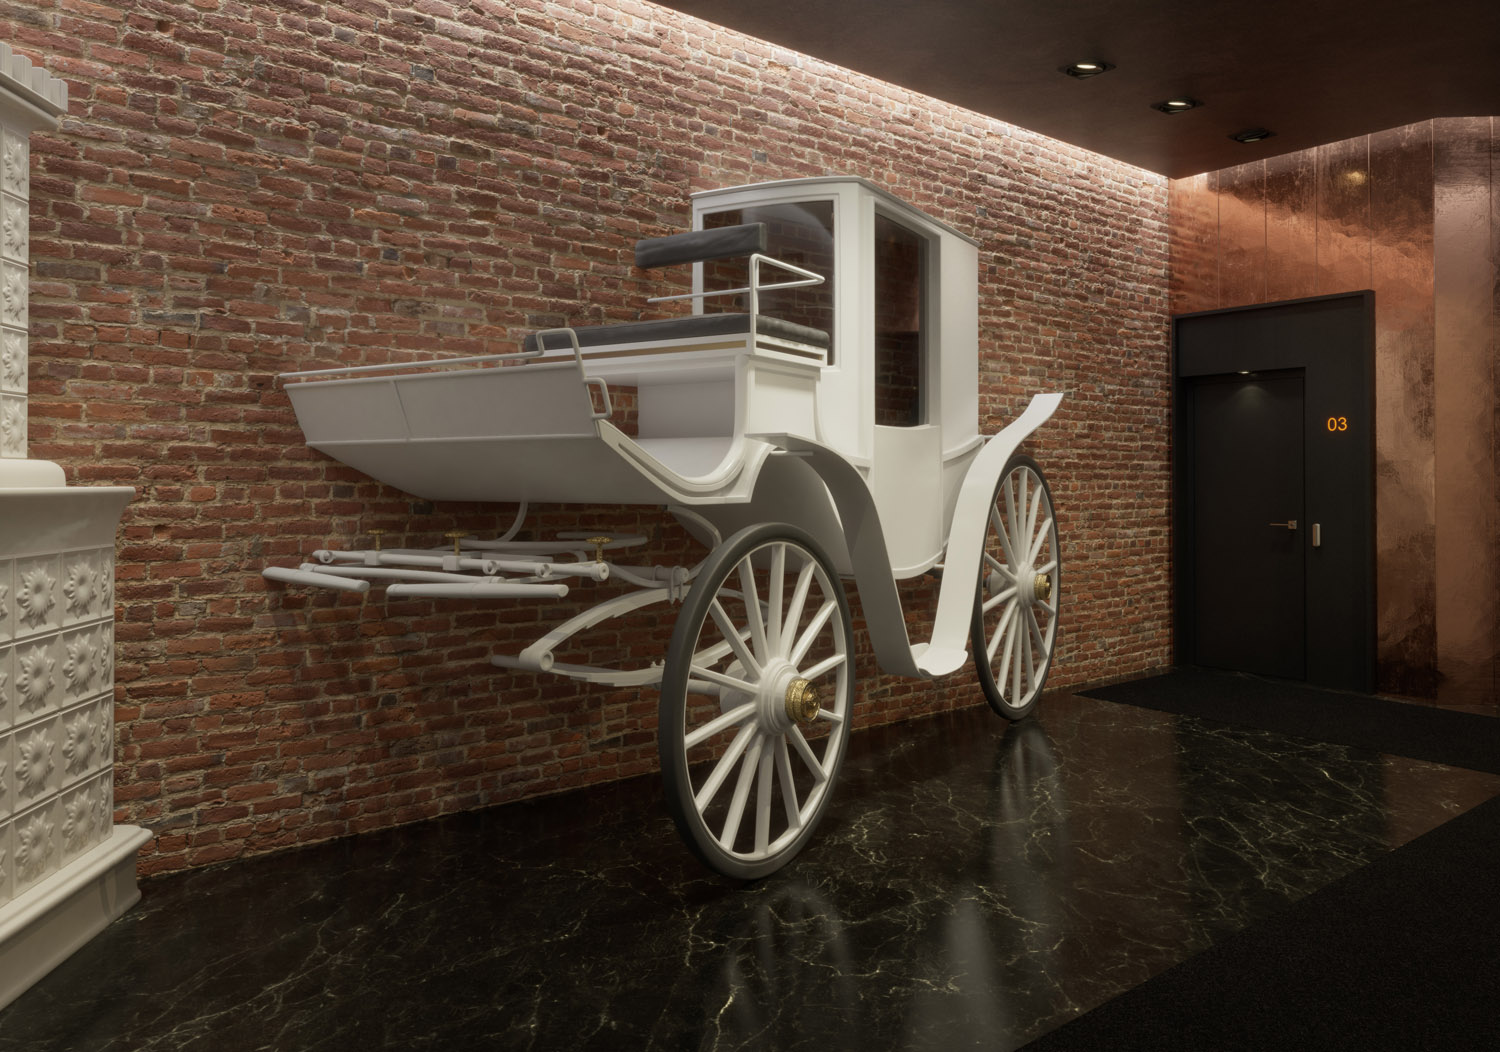 3D vizualization of a hotel interior with white horse-drawn carriage